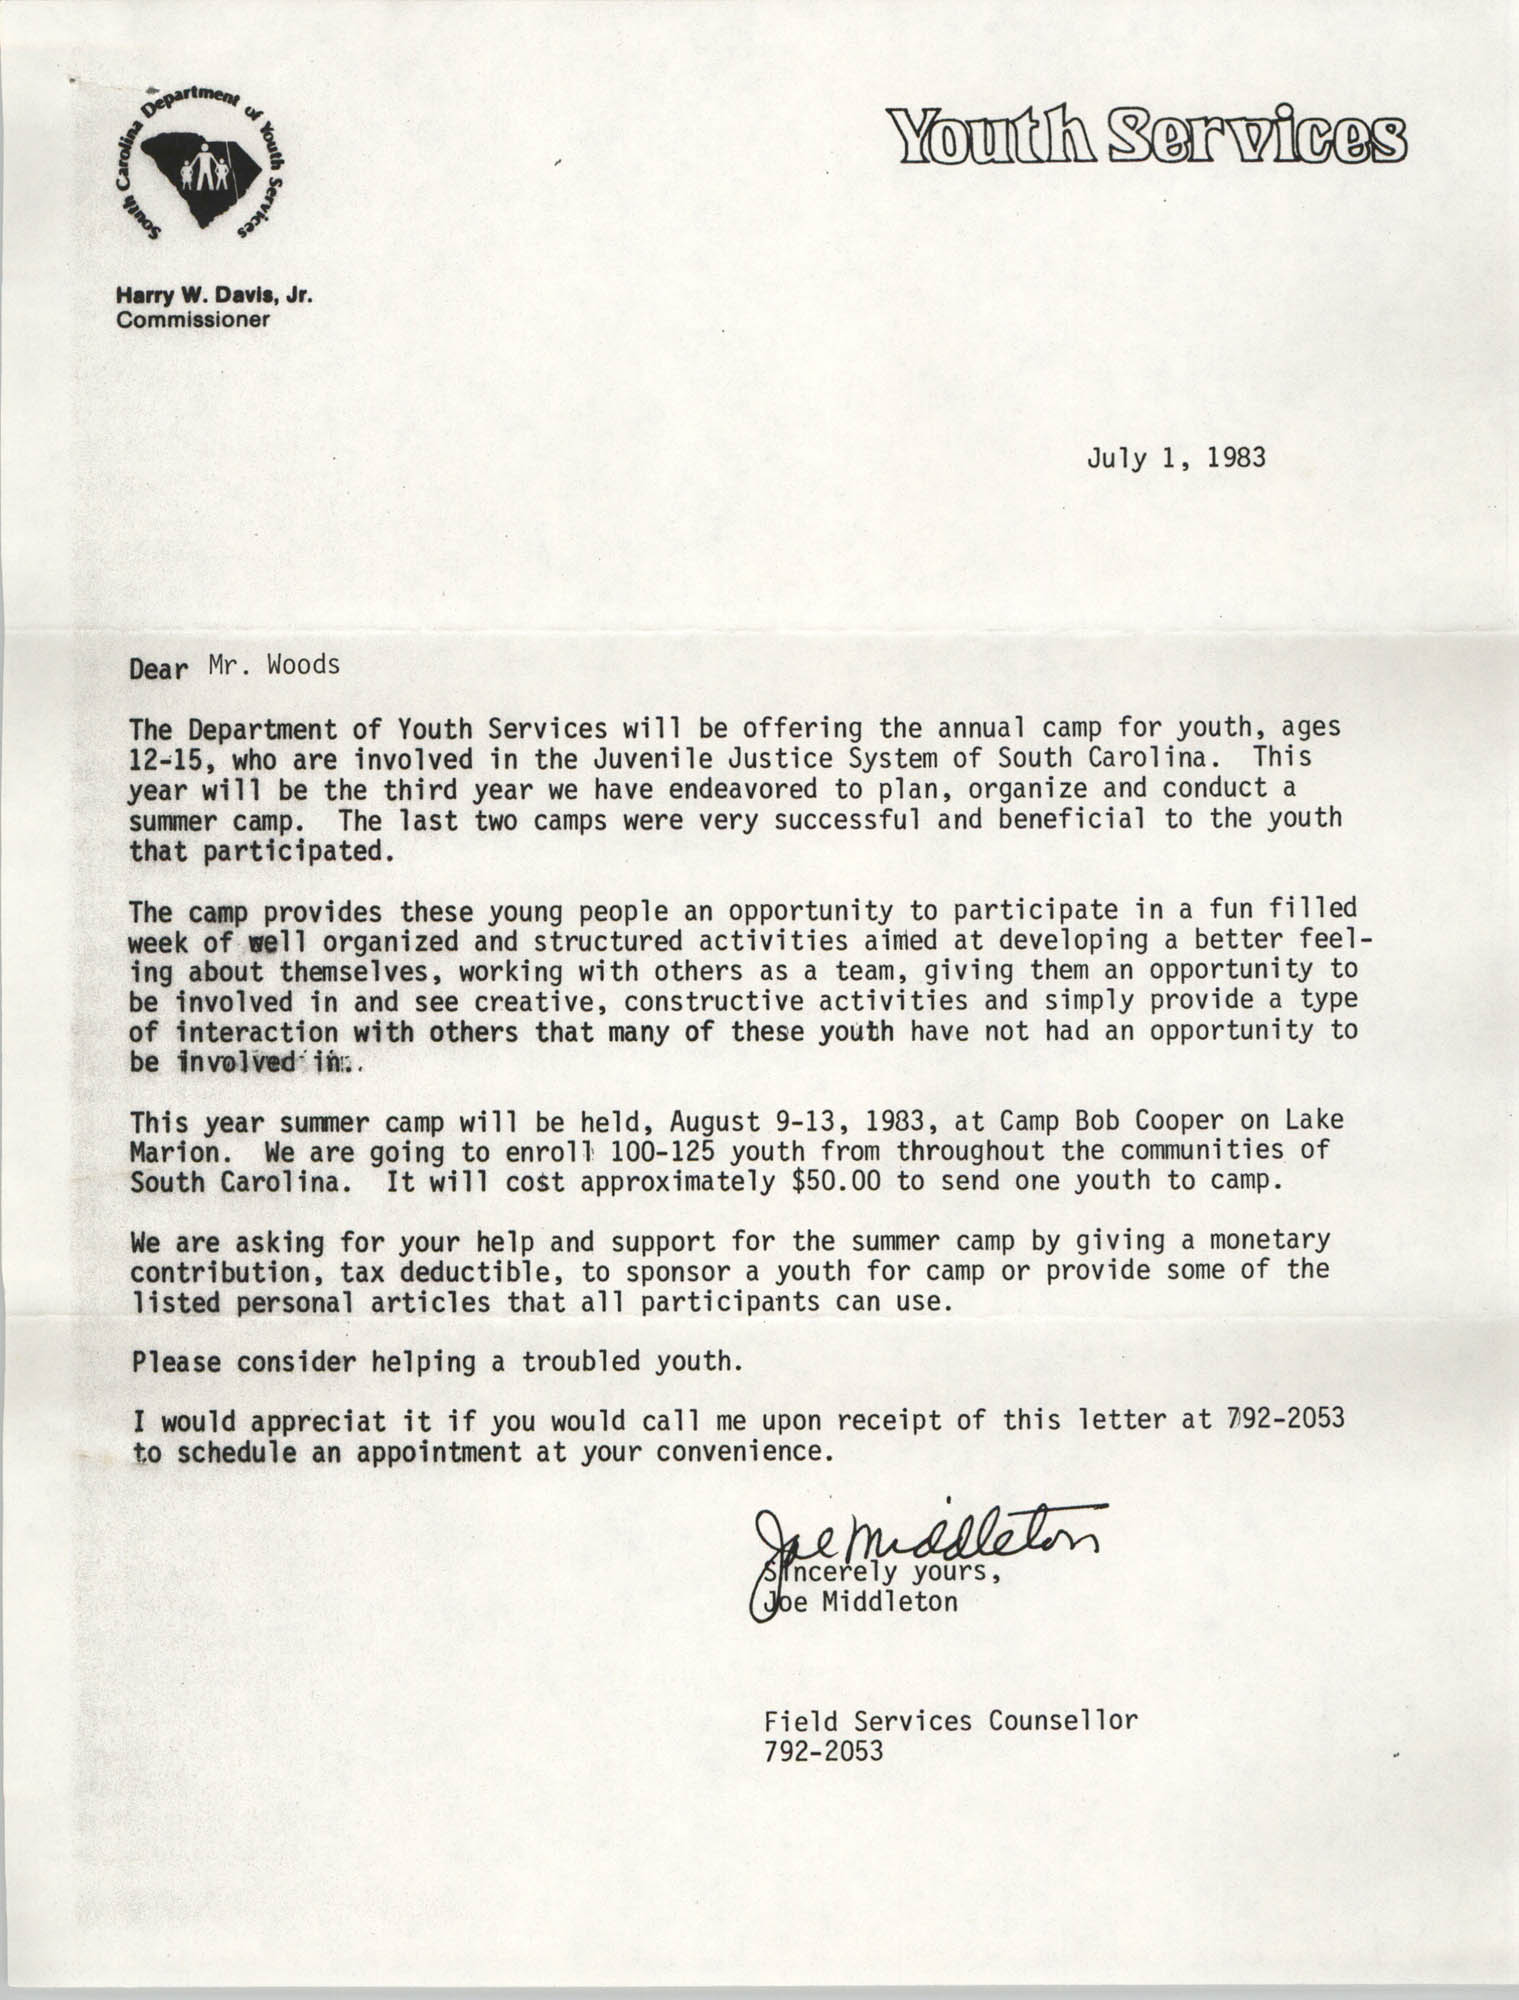 Letter from Joe Middleton to Delbert L. Woods, July 1, 1983